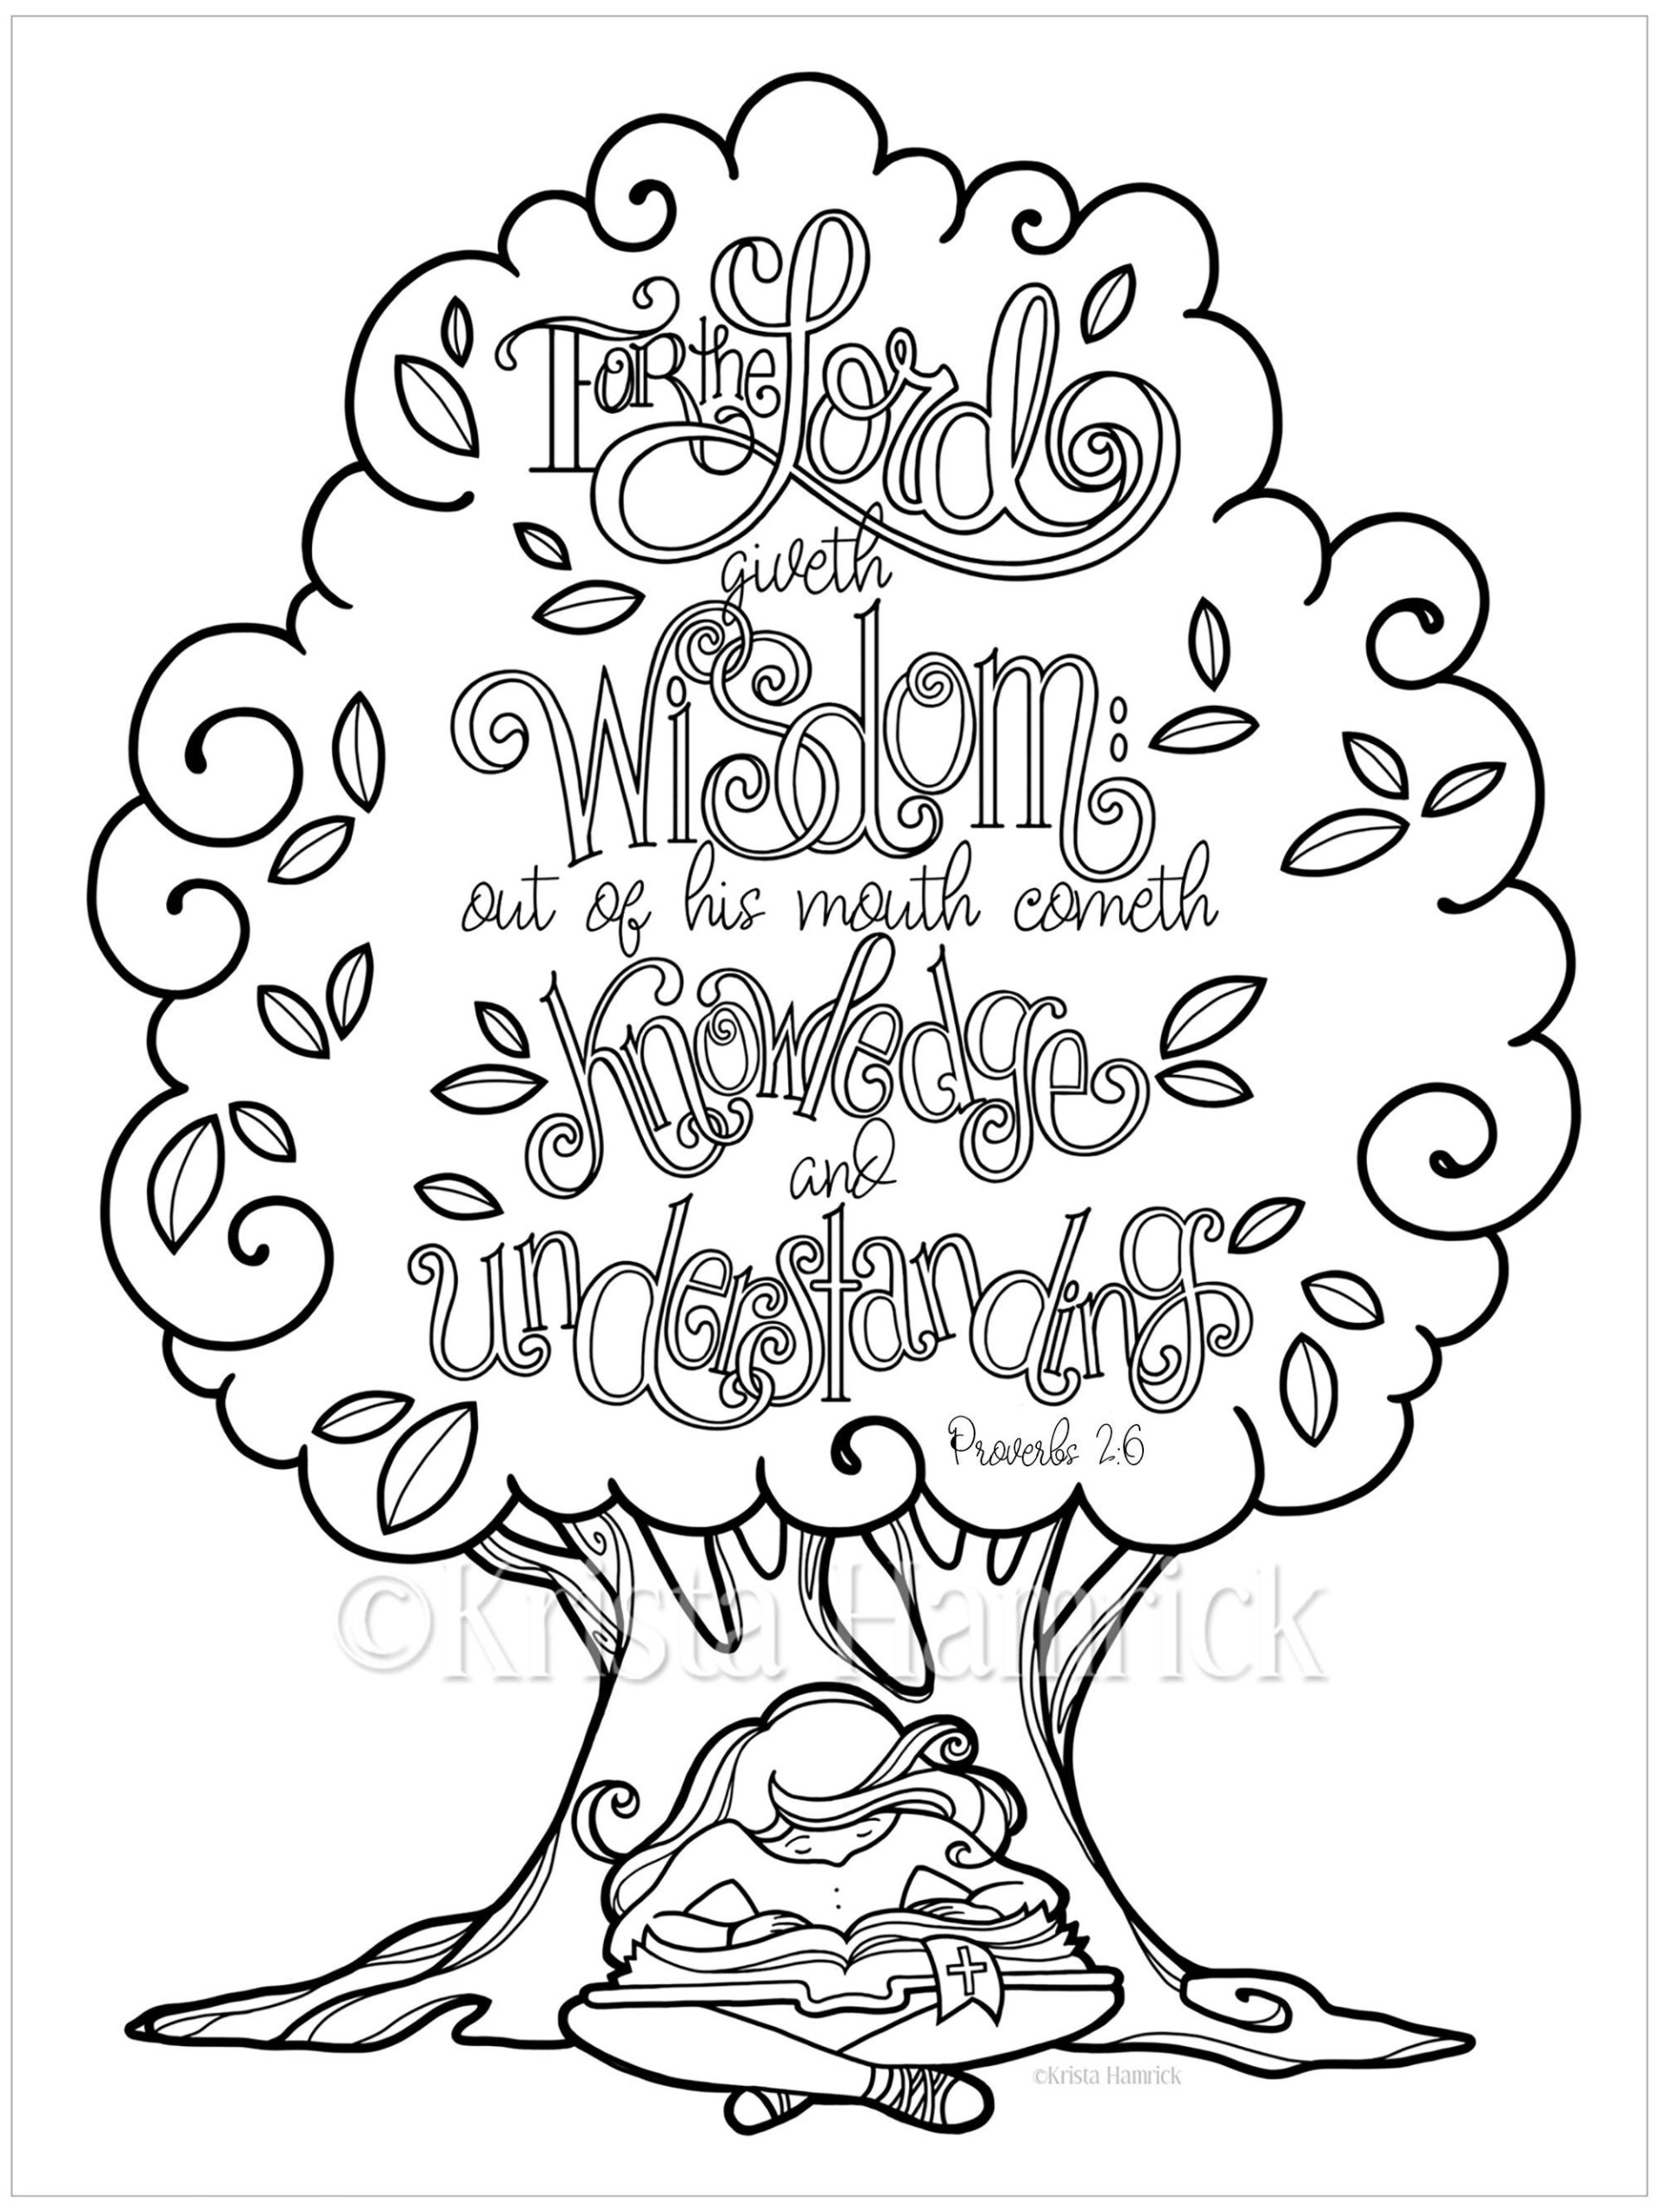 wisdom proverbs coloring in two sizes 5x11 bible etsy ivory ella il fullxfull 6ieu coloring pages Ivory Ella Coloring Page